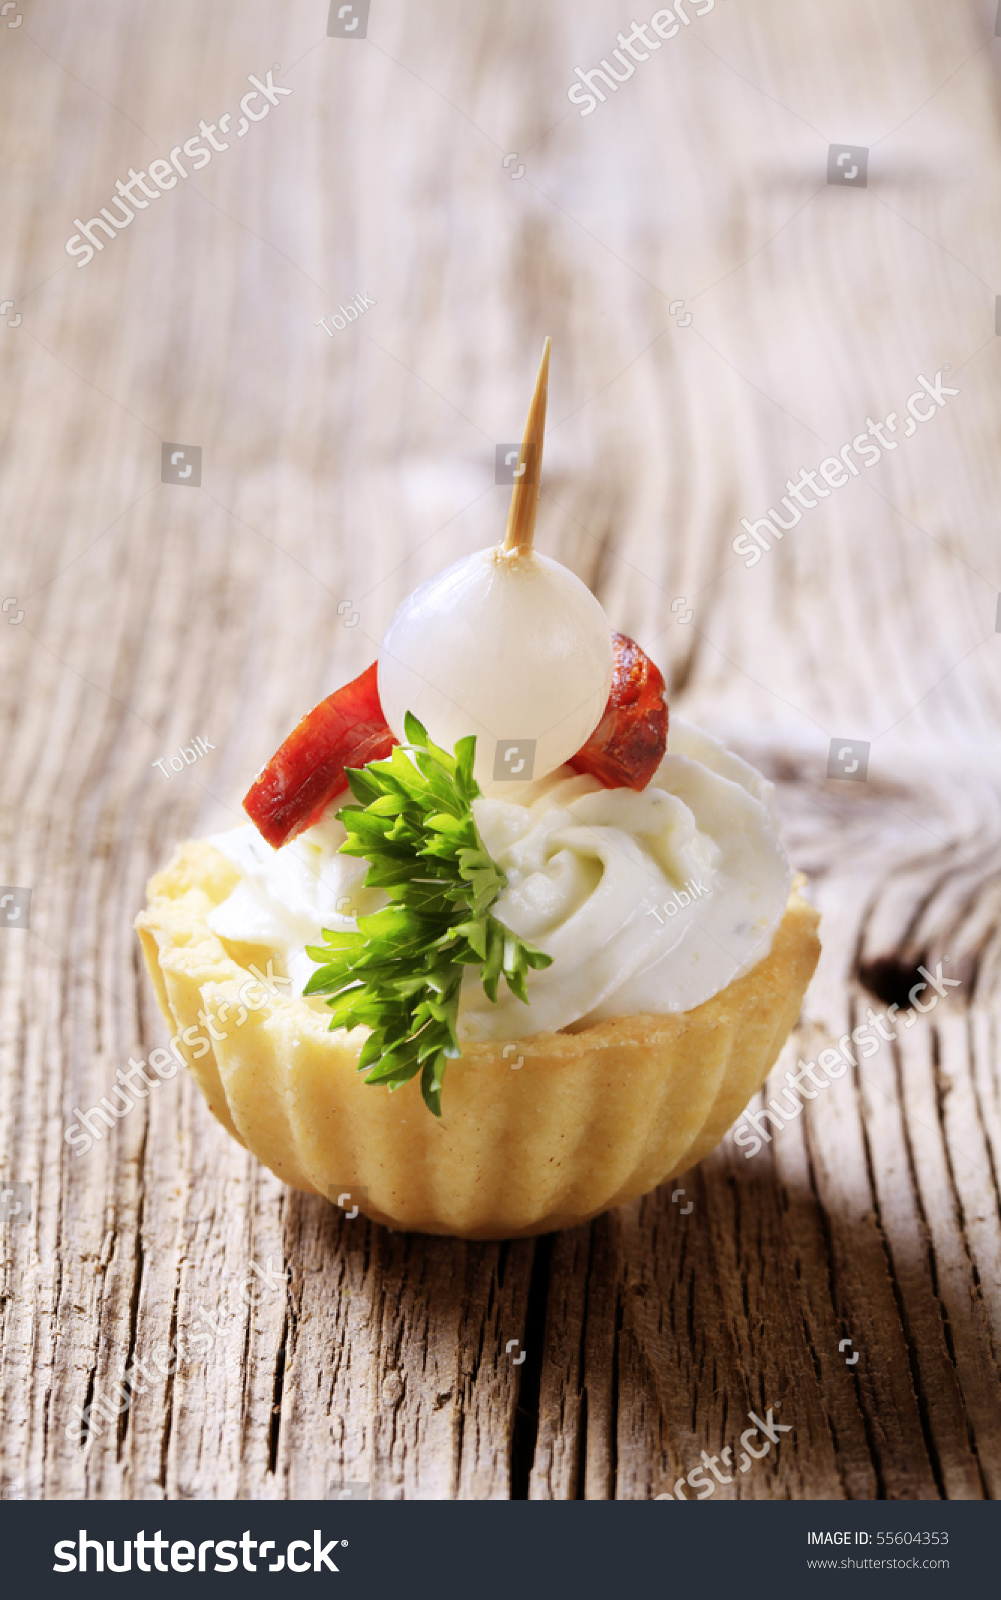 Canape tart shell with savory spread filling topped with for Buy canape shells